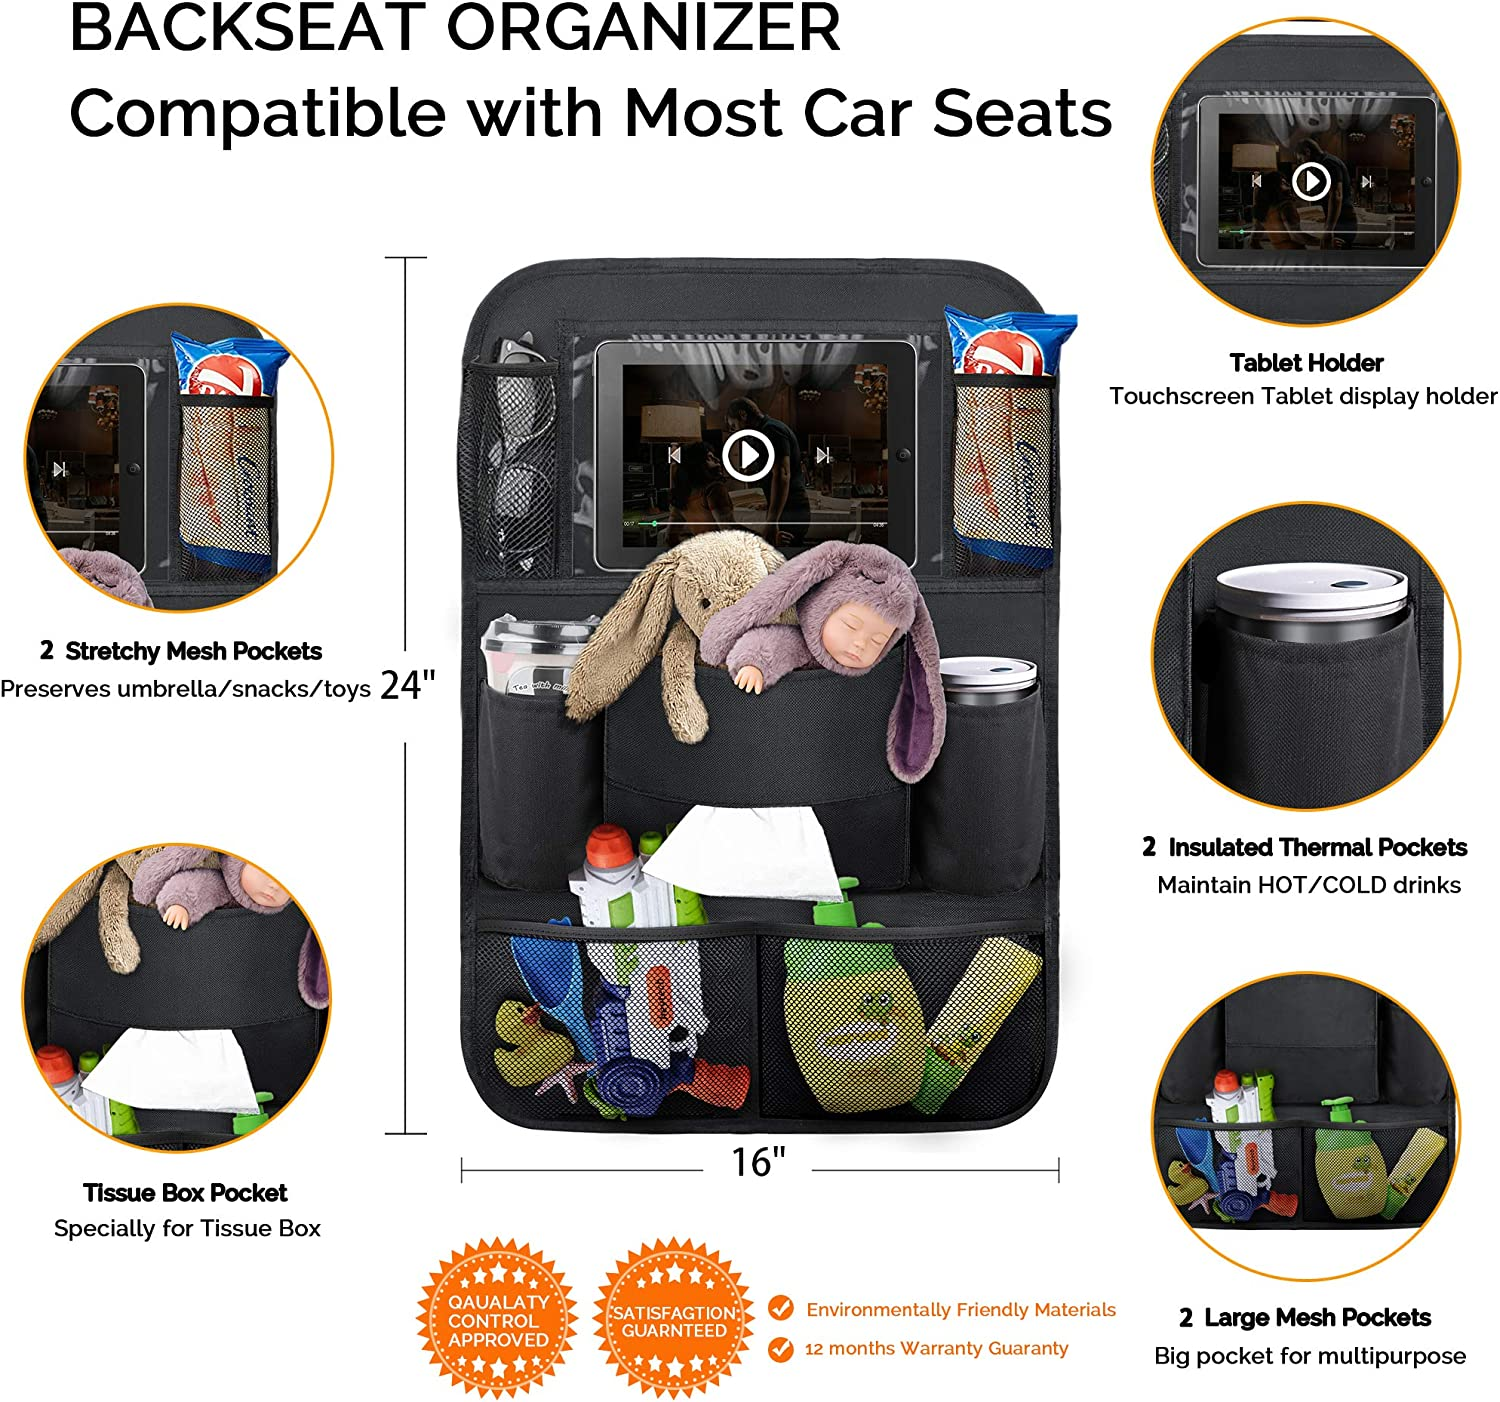 2 Pack OYRGCIK Backseat Car Organizer Kick Mats Car Back Seat Protector with Touch Screen Tablet Holder Tissue Box 8 Storage Pockets for Toys Book Bottle Drinks Kids Baby Toddler Travel Accessories